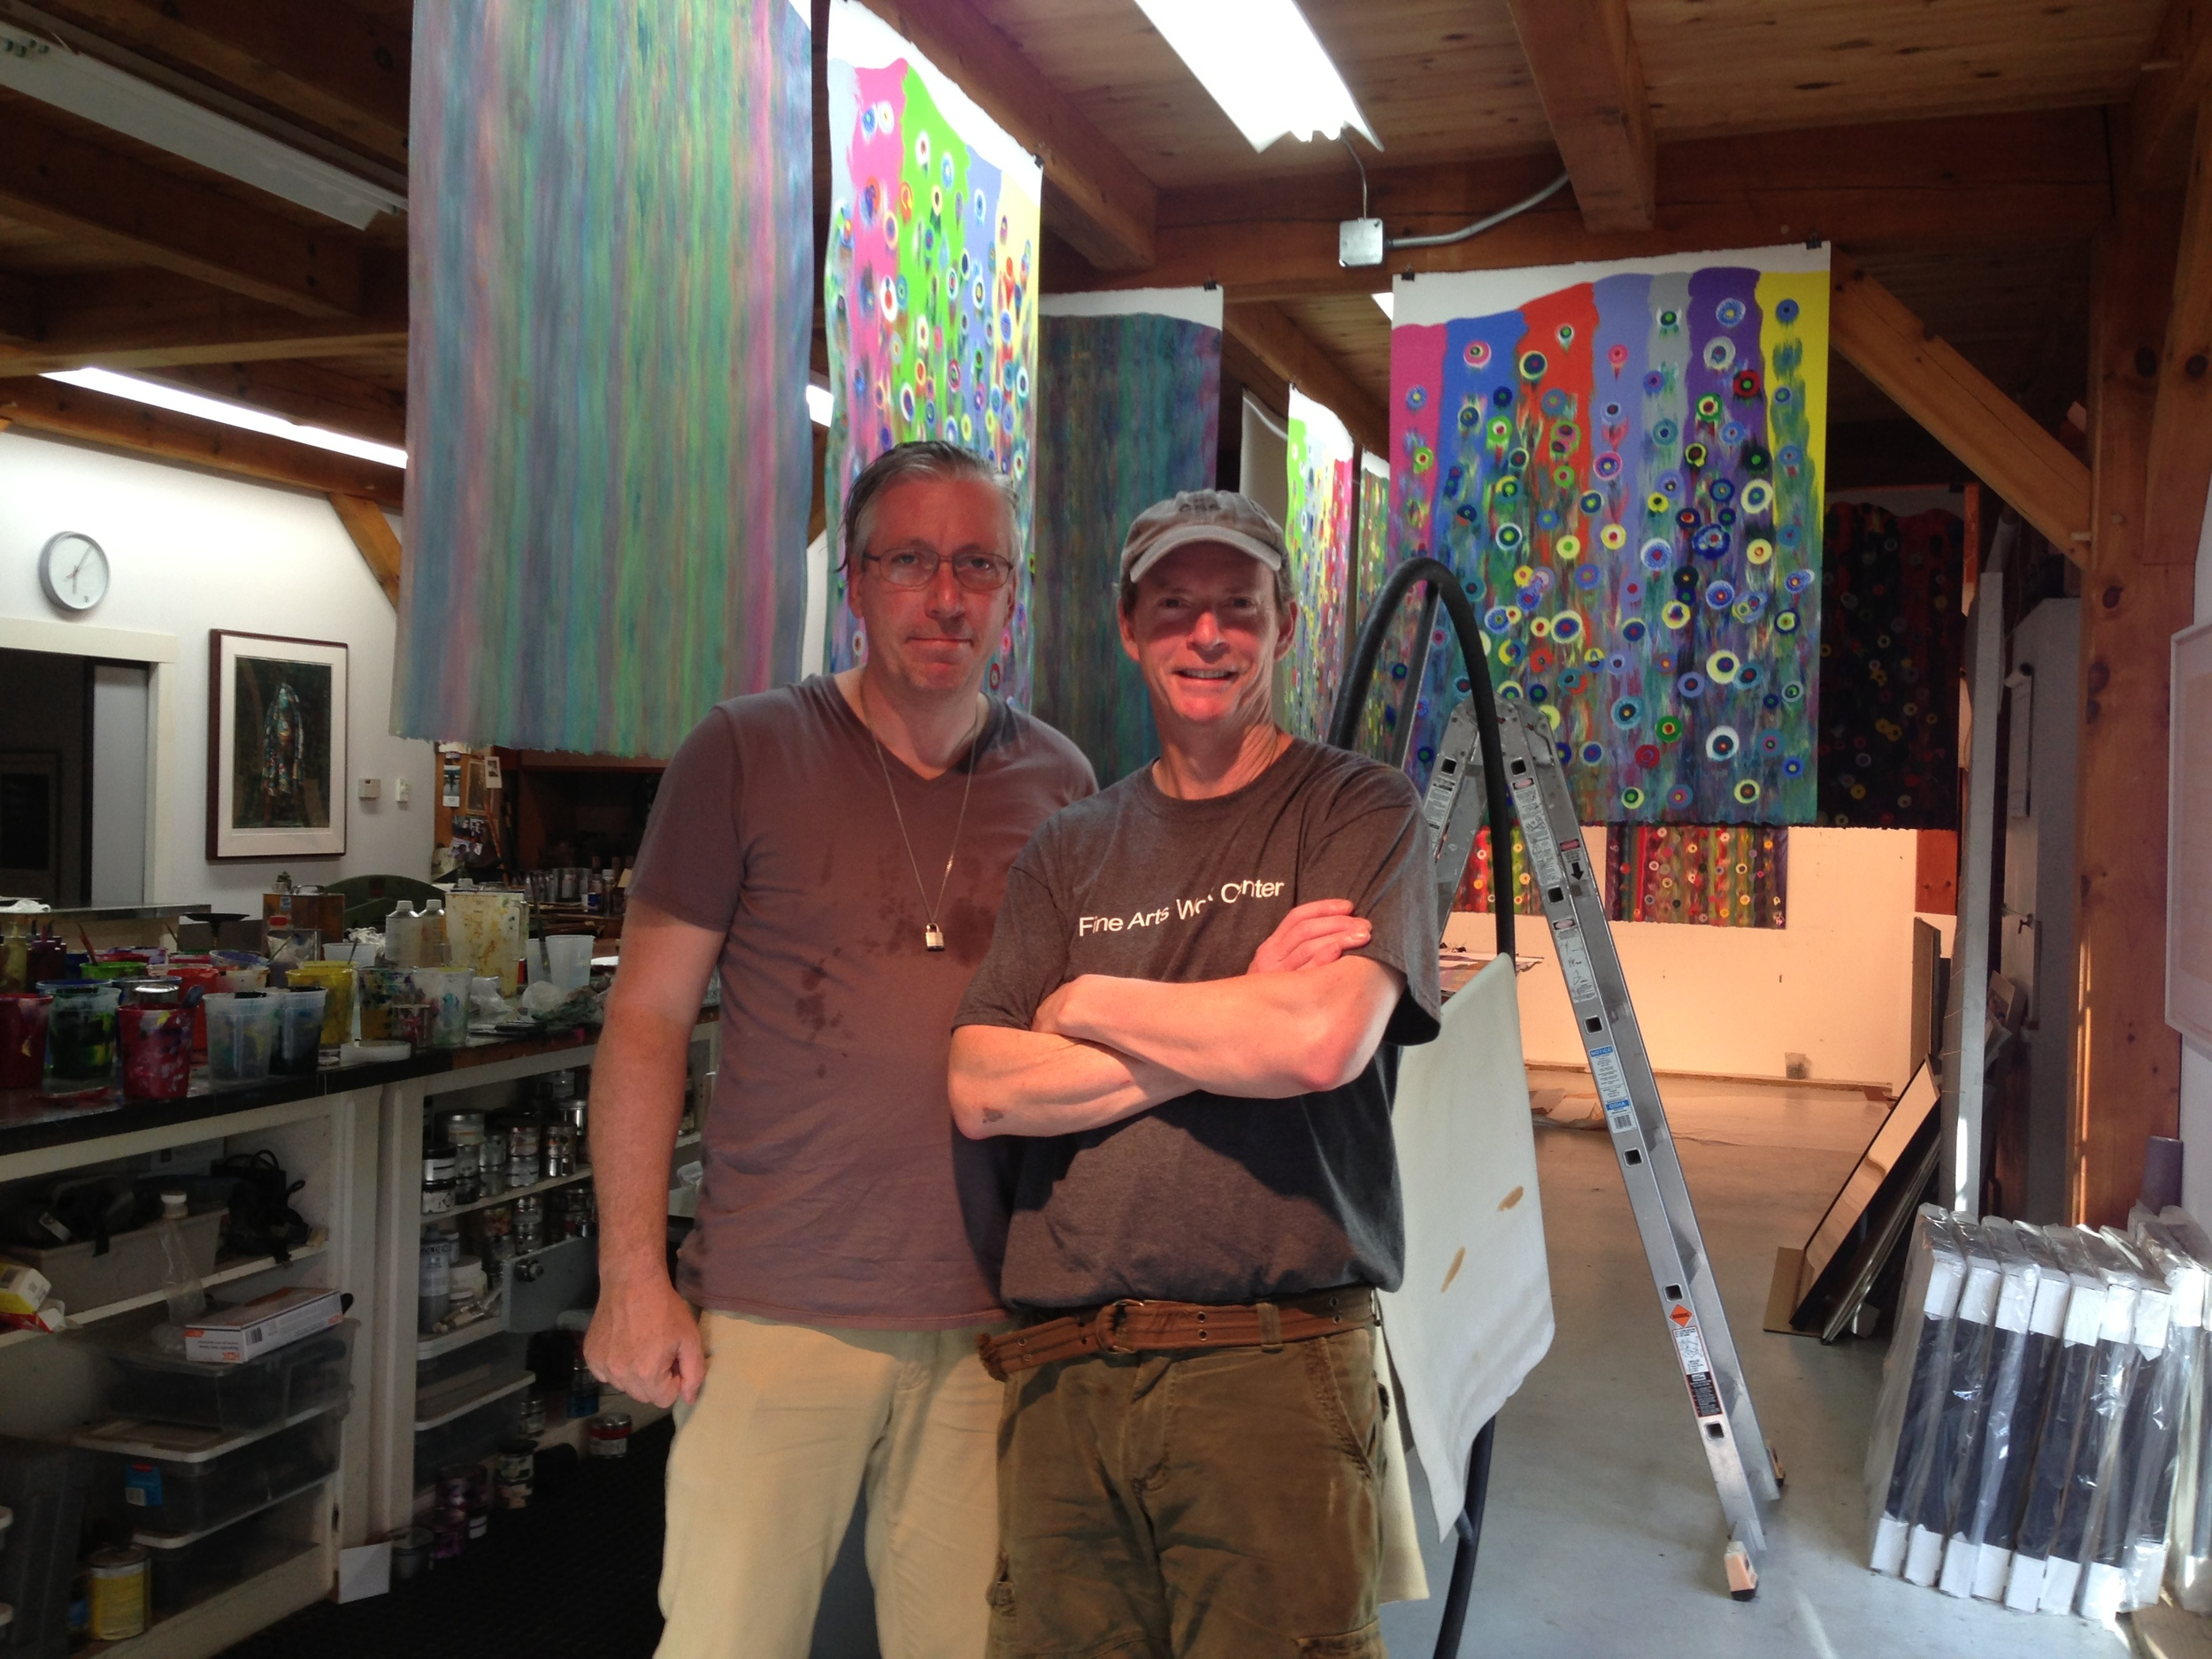 Markus Linnenbrink and James Stroud with a backdrop of Linnenbrink's monotypes IHEARDYOULOOKING. Because the paper is so saturated with ink, they must be hung from the studio rafters for 2 weeks in order to completely dry.